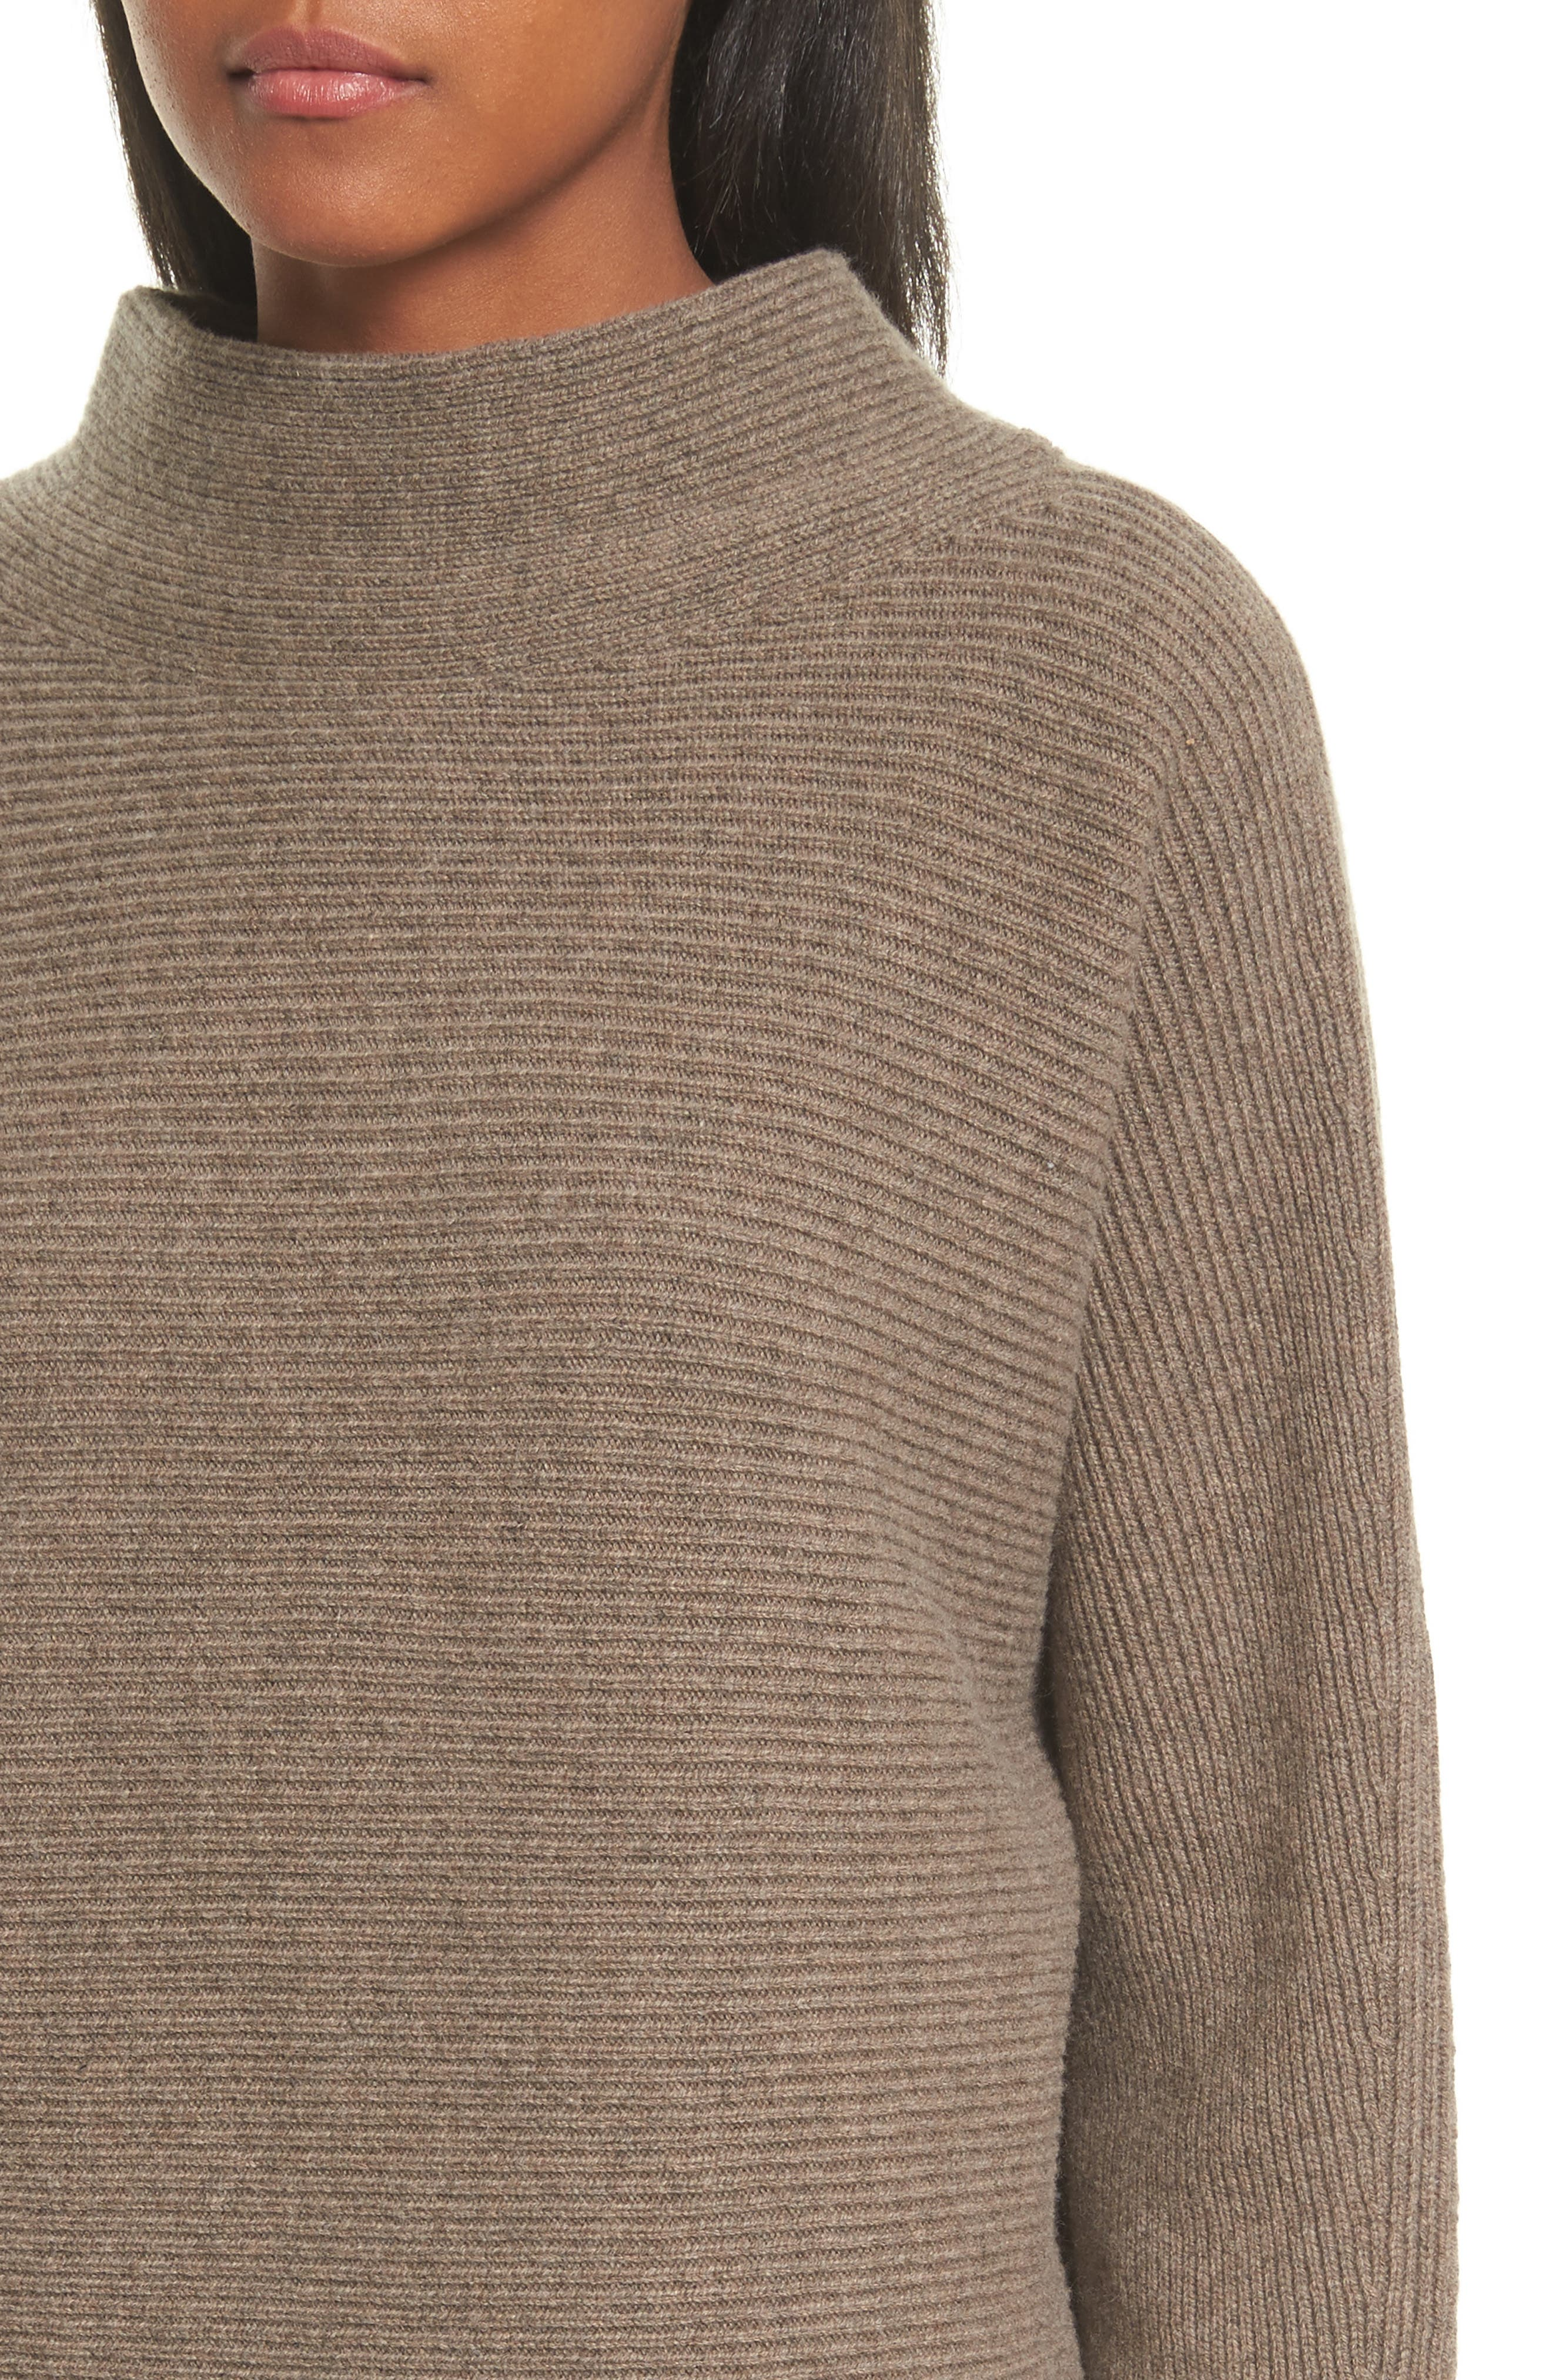 Ribbed Wool & Cashmere Sweater,                             Alternate thumbnail 4, color,                             285